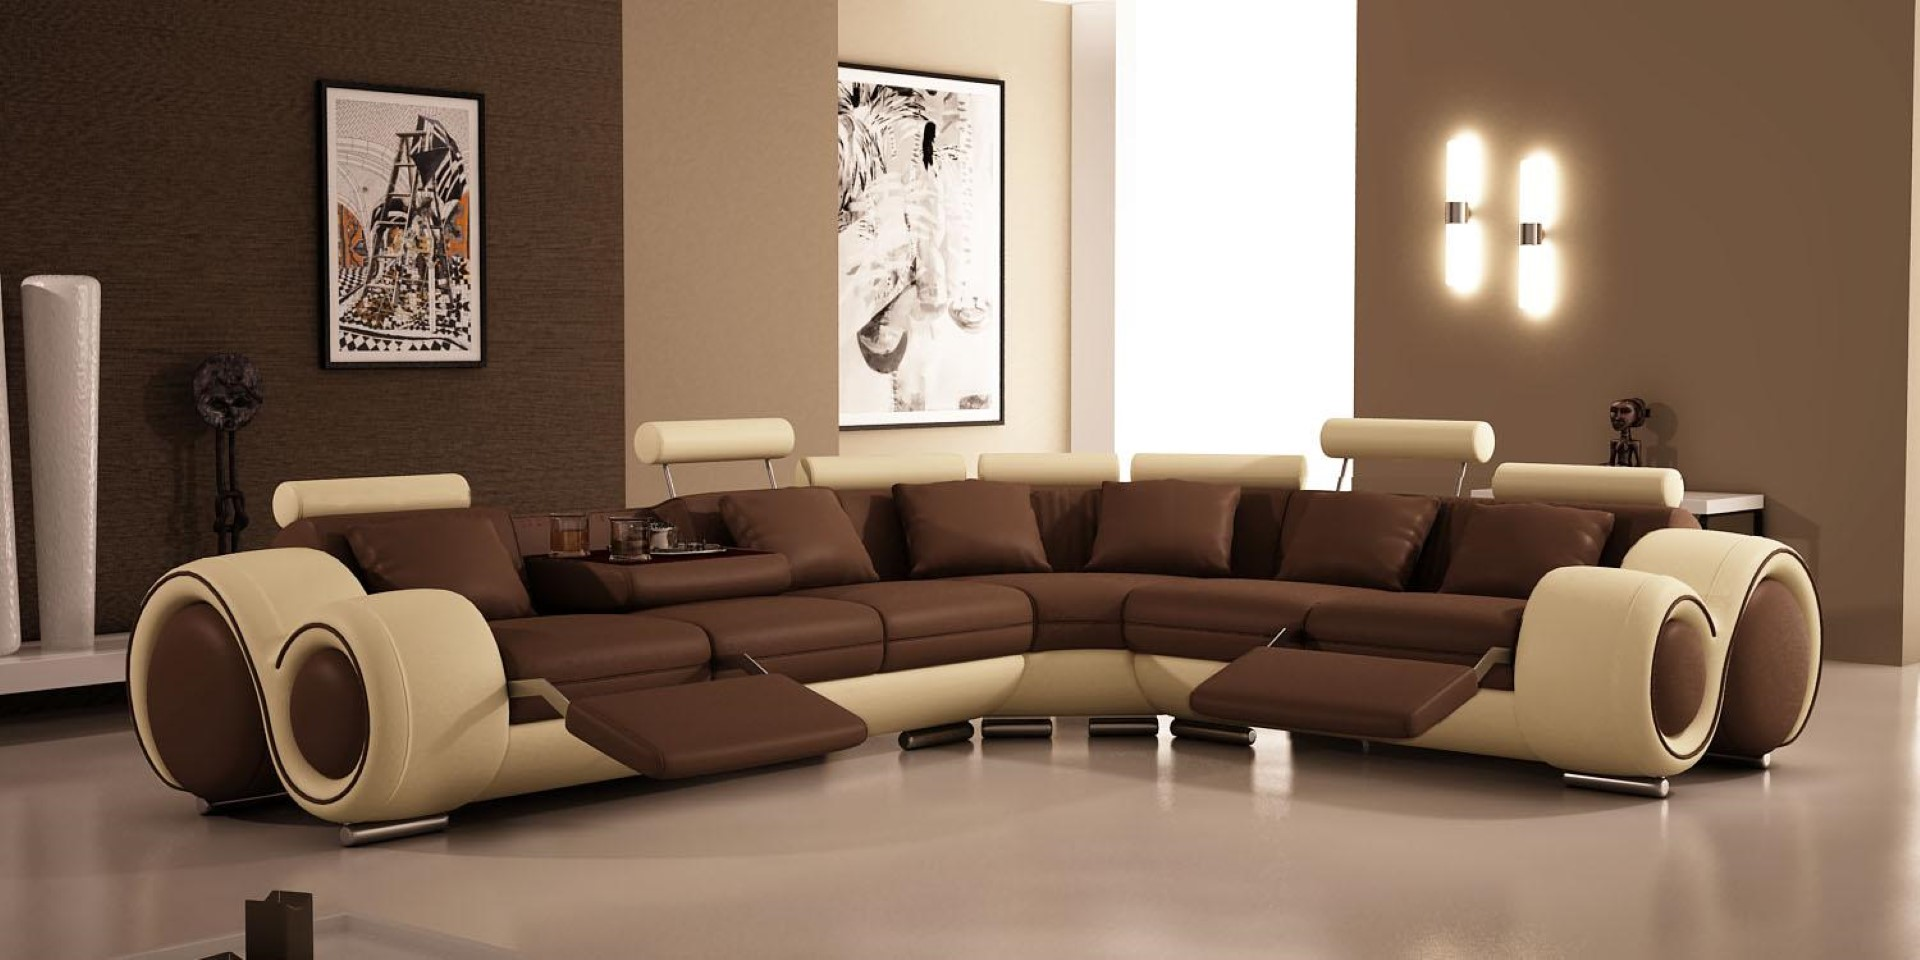 Astounding Design Of The Paint Color Of Living Room Areas With Modern Sofa Added With Brown Wall Ideas